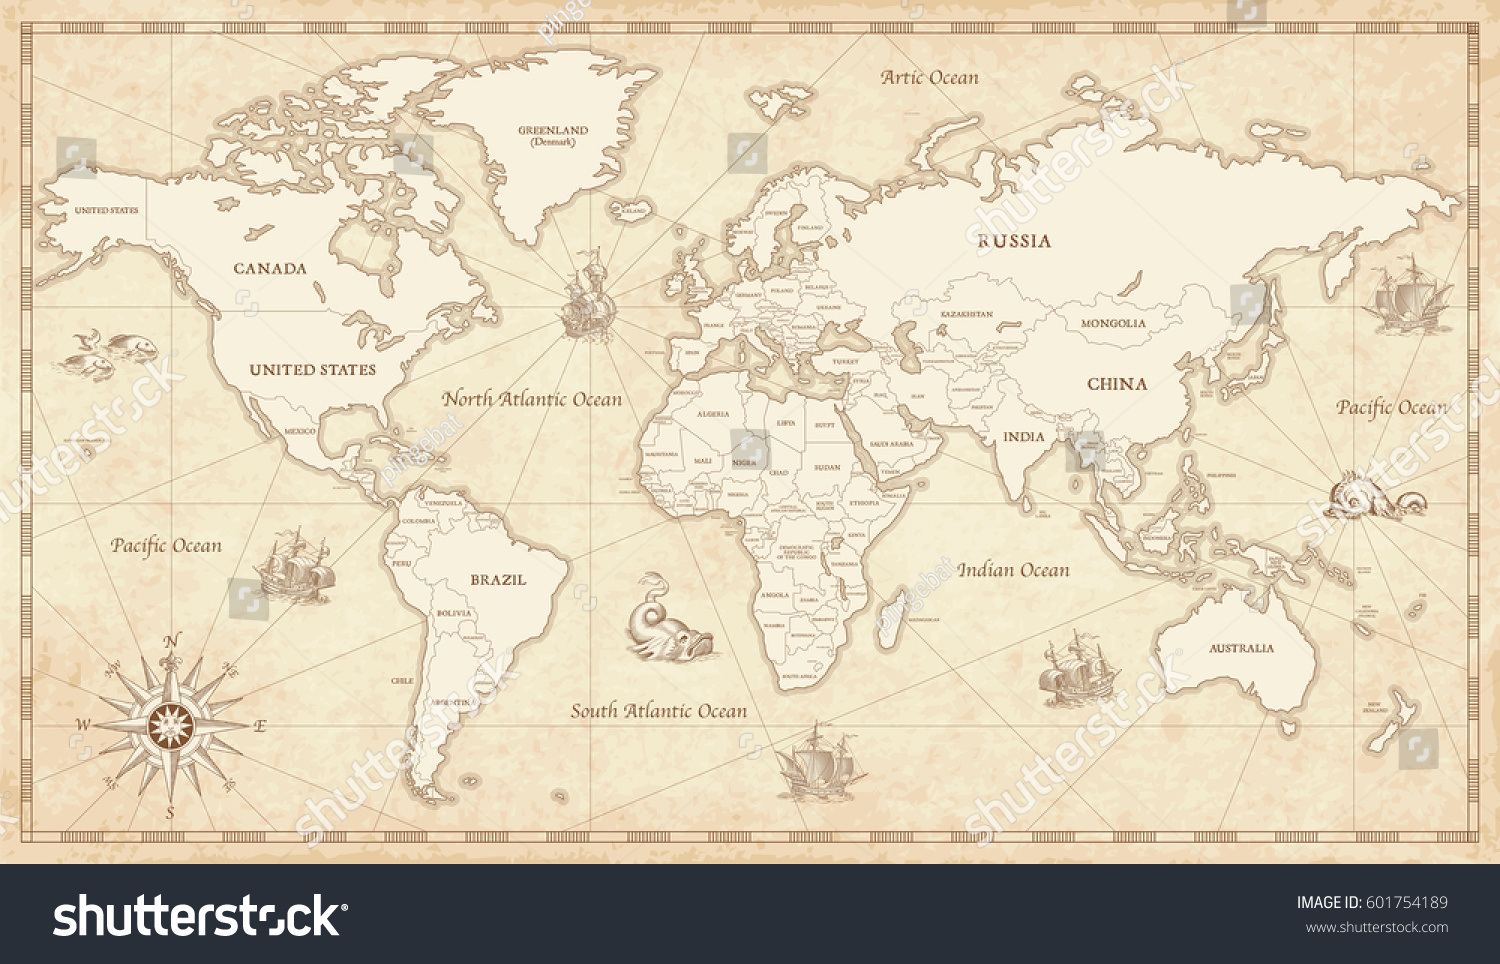 Great detail illustration world map vintage stock vector 601754189 great detail illustration of the world map in vintage style with all countries boundaries and names gumiabroncs Images